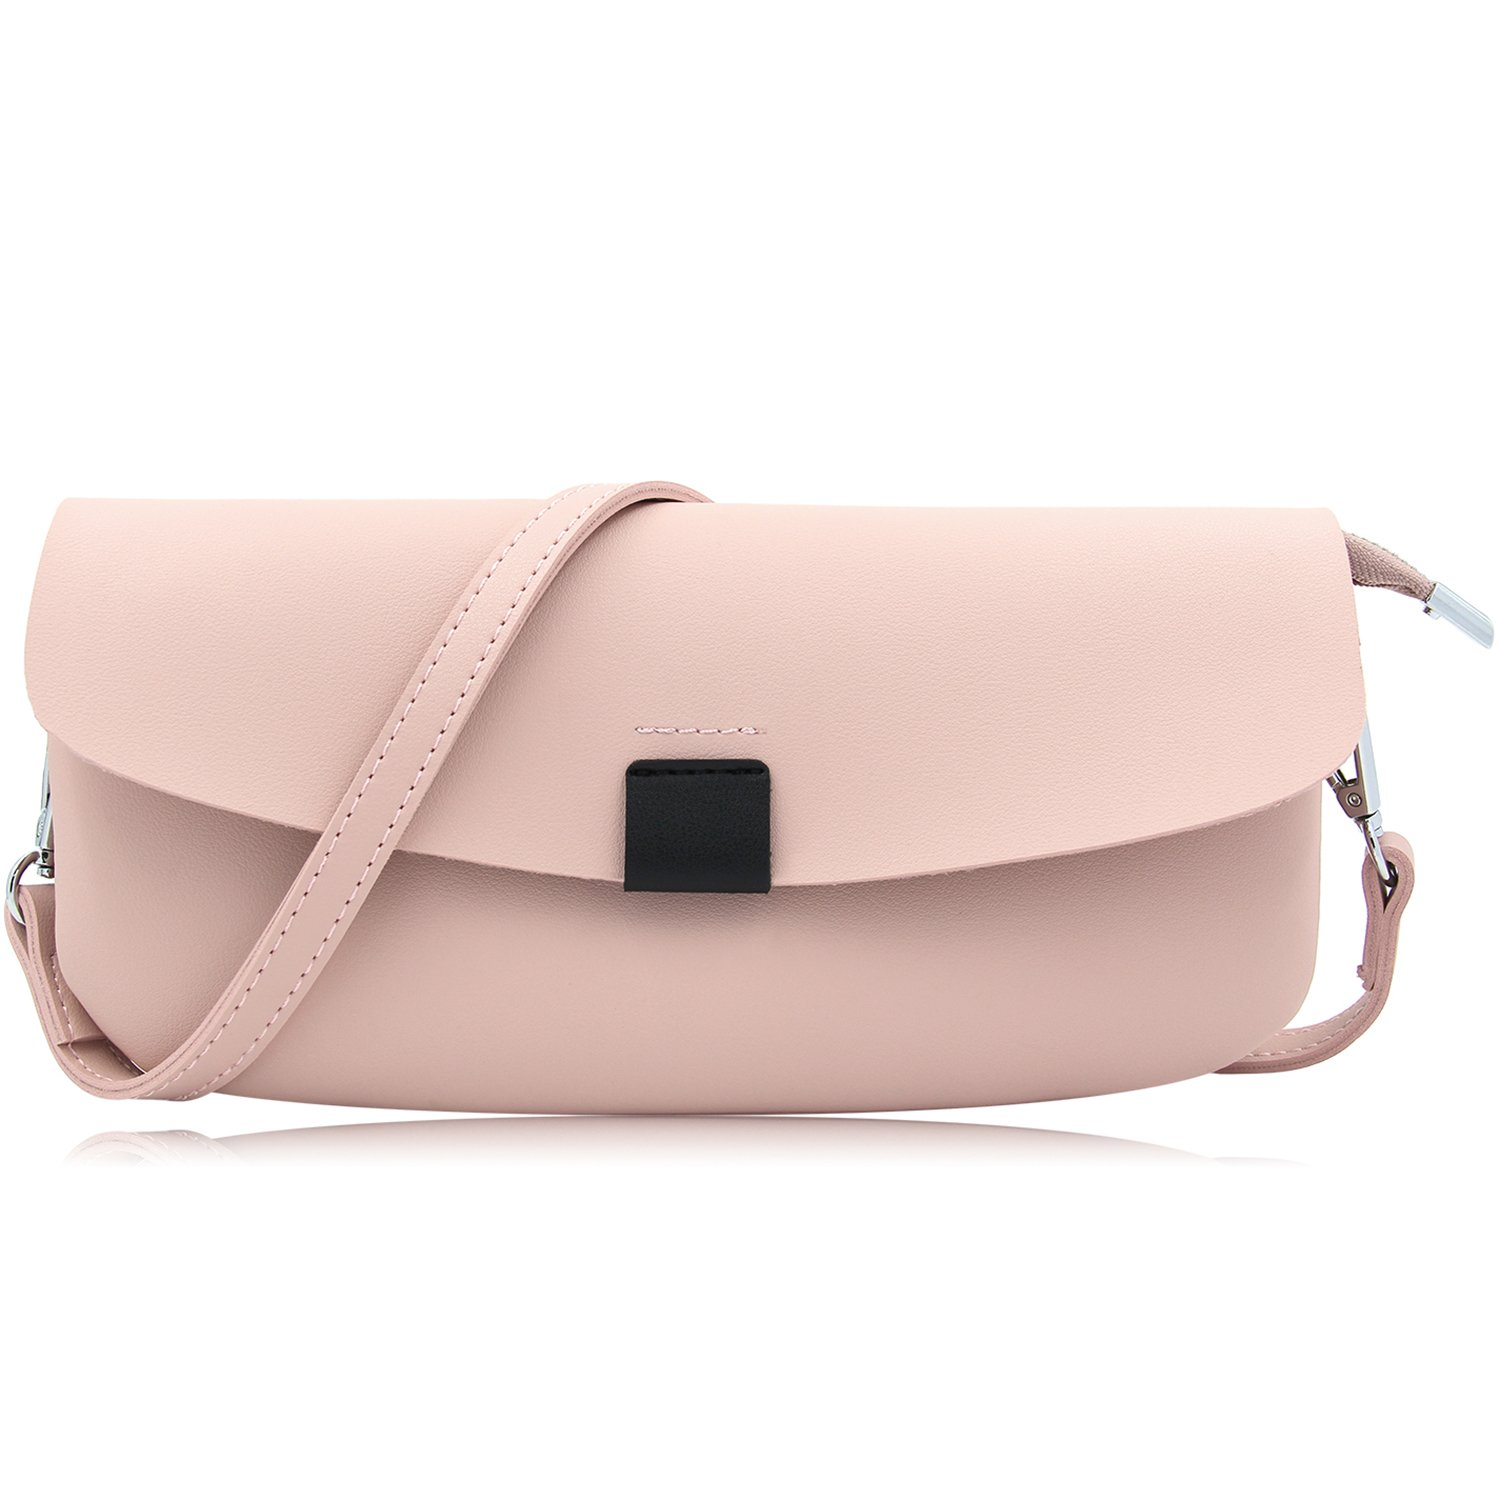 Oversized Faux Leather Clutches Women Casual Envelope Evening Clutch Bag Purses And Handbags With Wristlet And Shoulder Strap (Light Pink)